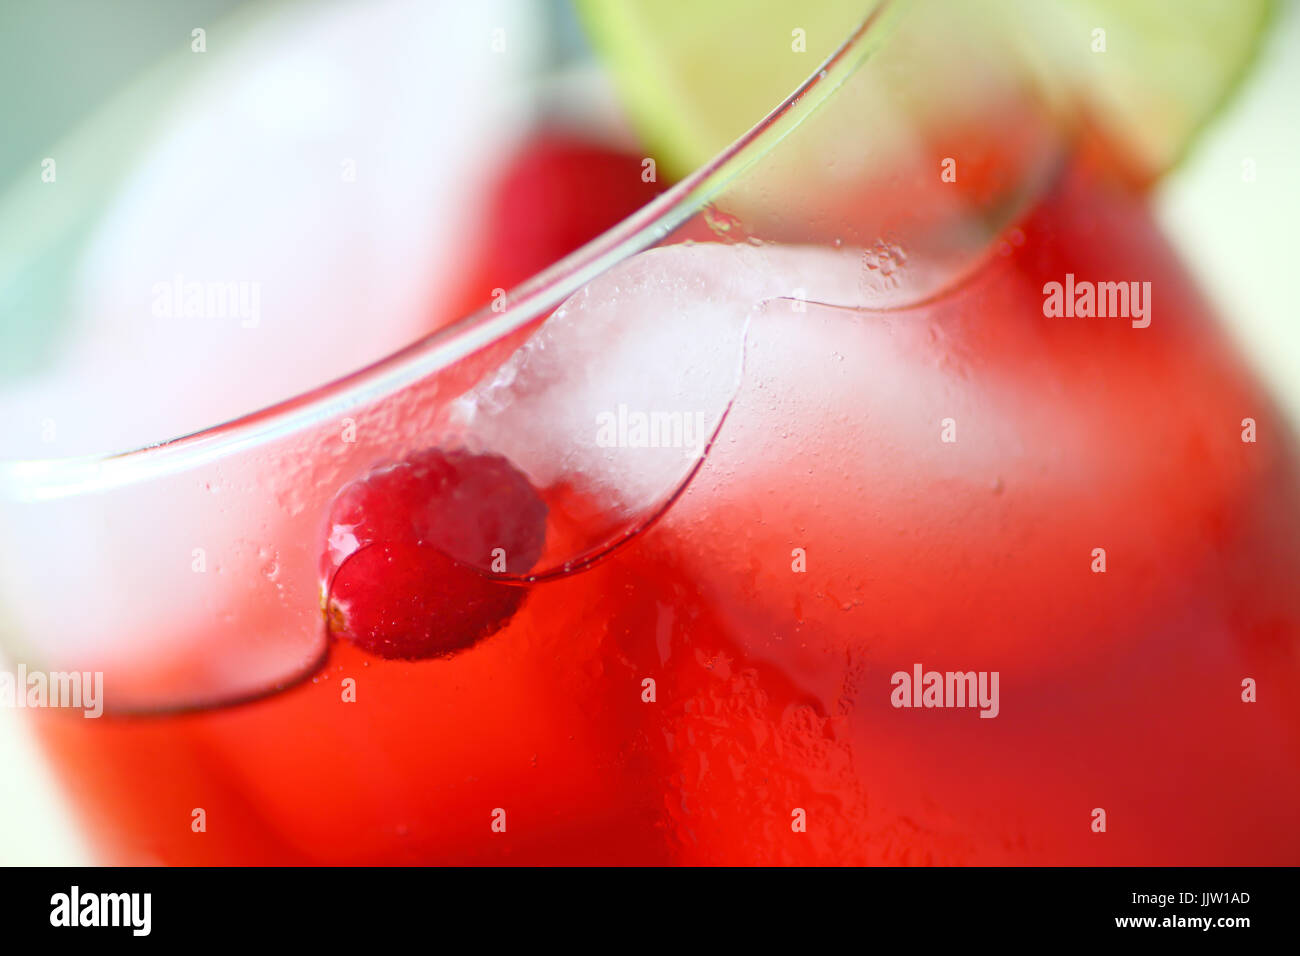 Closeup view of an icy drink made with cranberry juice with fresh berries and a slice of lime - Stock Image